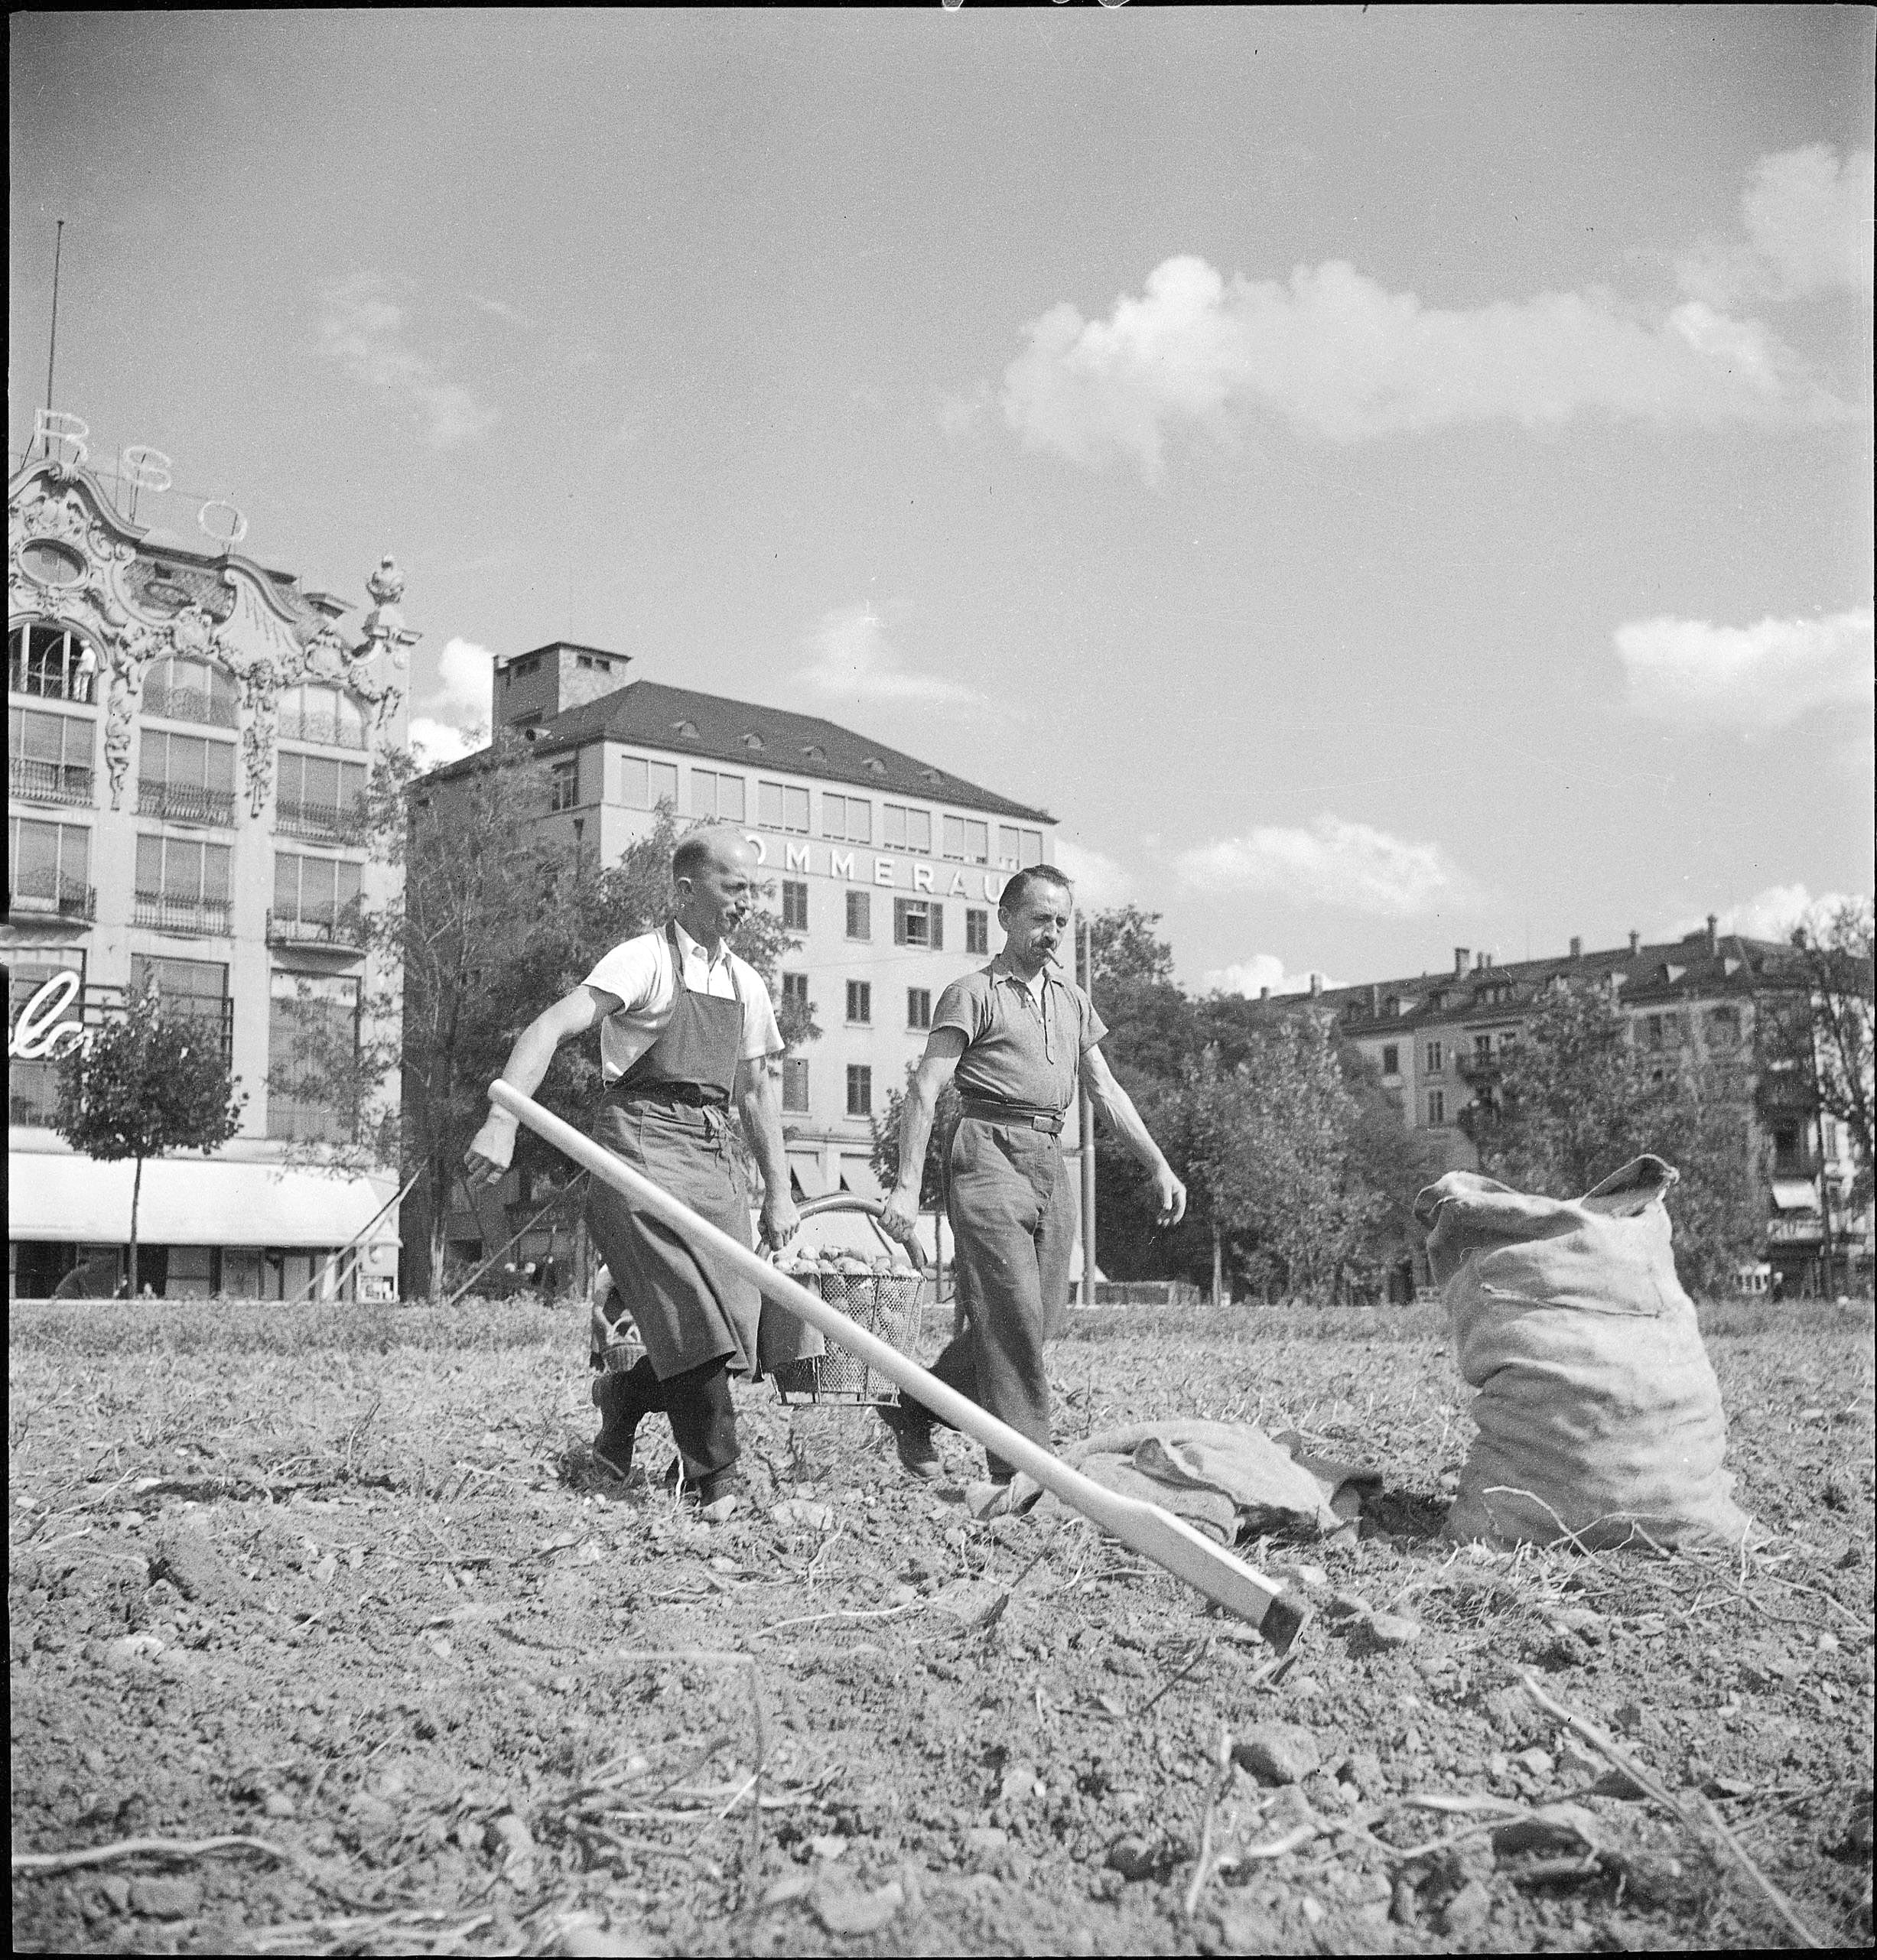 Farming at Bellevue, Zurich, 1941  Providing enough food for the population is a theme which appears frequently in the news bulletins of the SWS. The information broadcast varies between reassuring updates about the self-sufficiency of Switzerland and the sacrifies made by the population. (Student: William Yoakim)